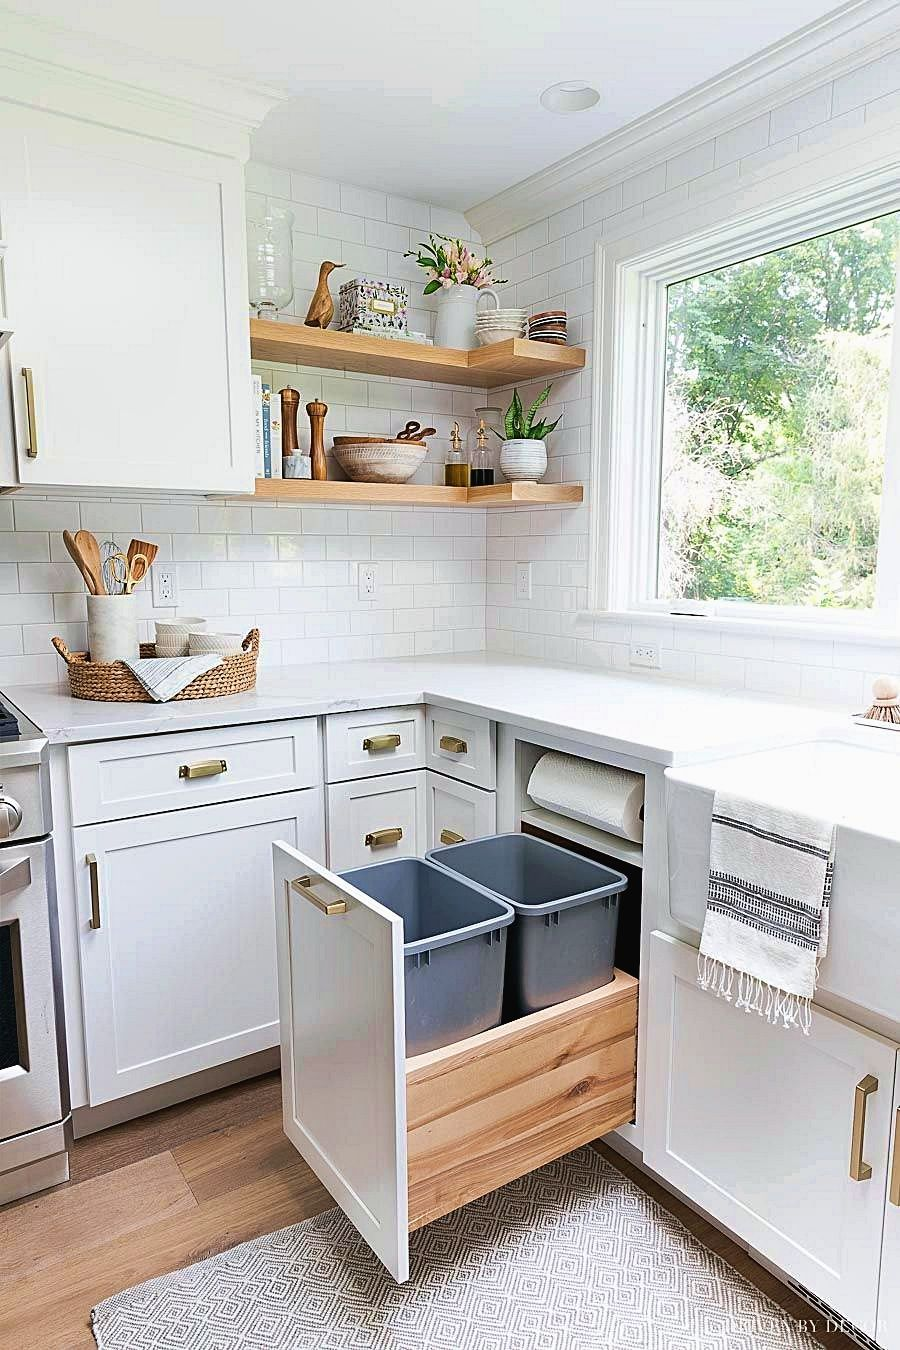 All The Cool Characteristics Of Modern Kitchen Cabinets Kitchen Remodel Small Kitchen Renovation Kitchen Design Small Kitchen remodel must haves